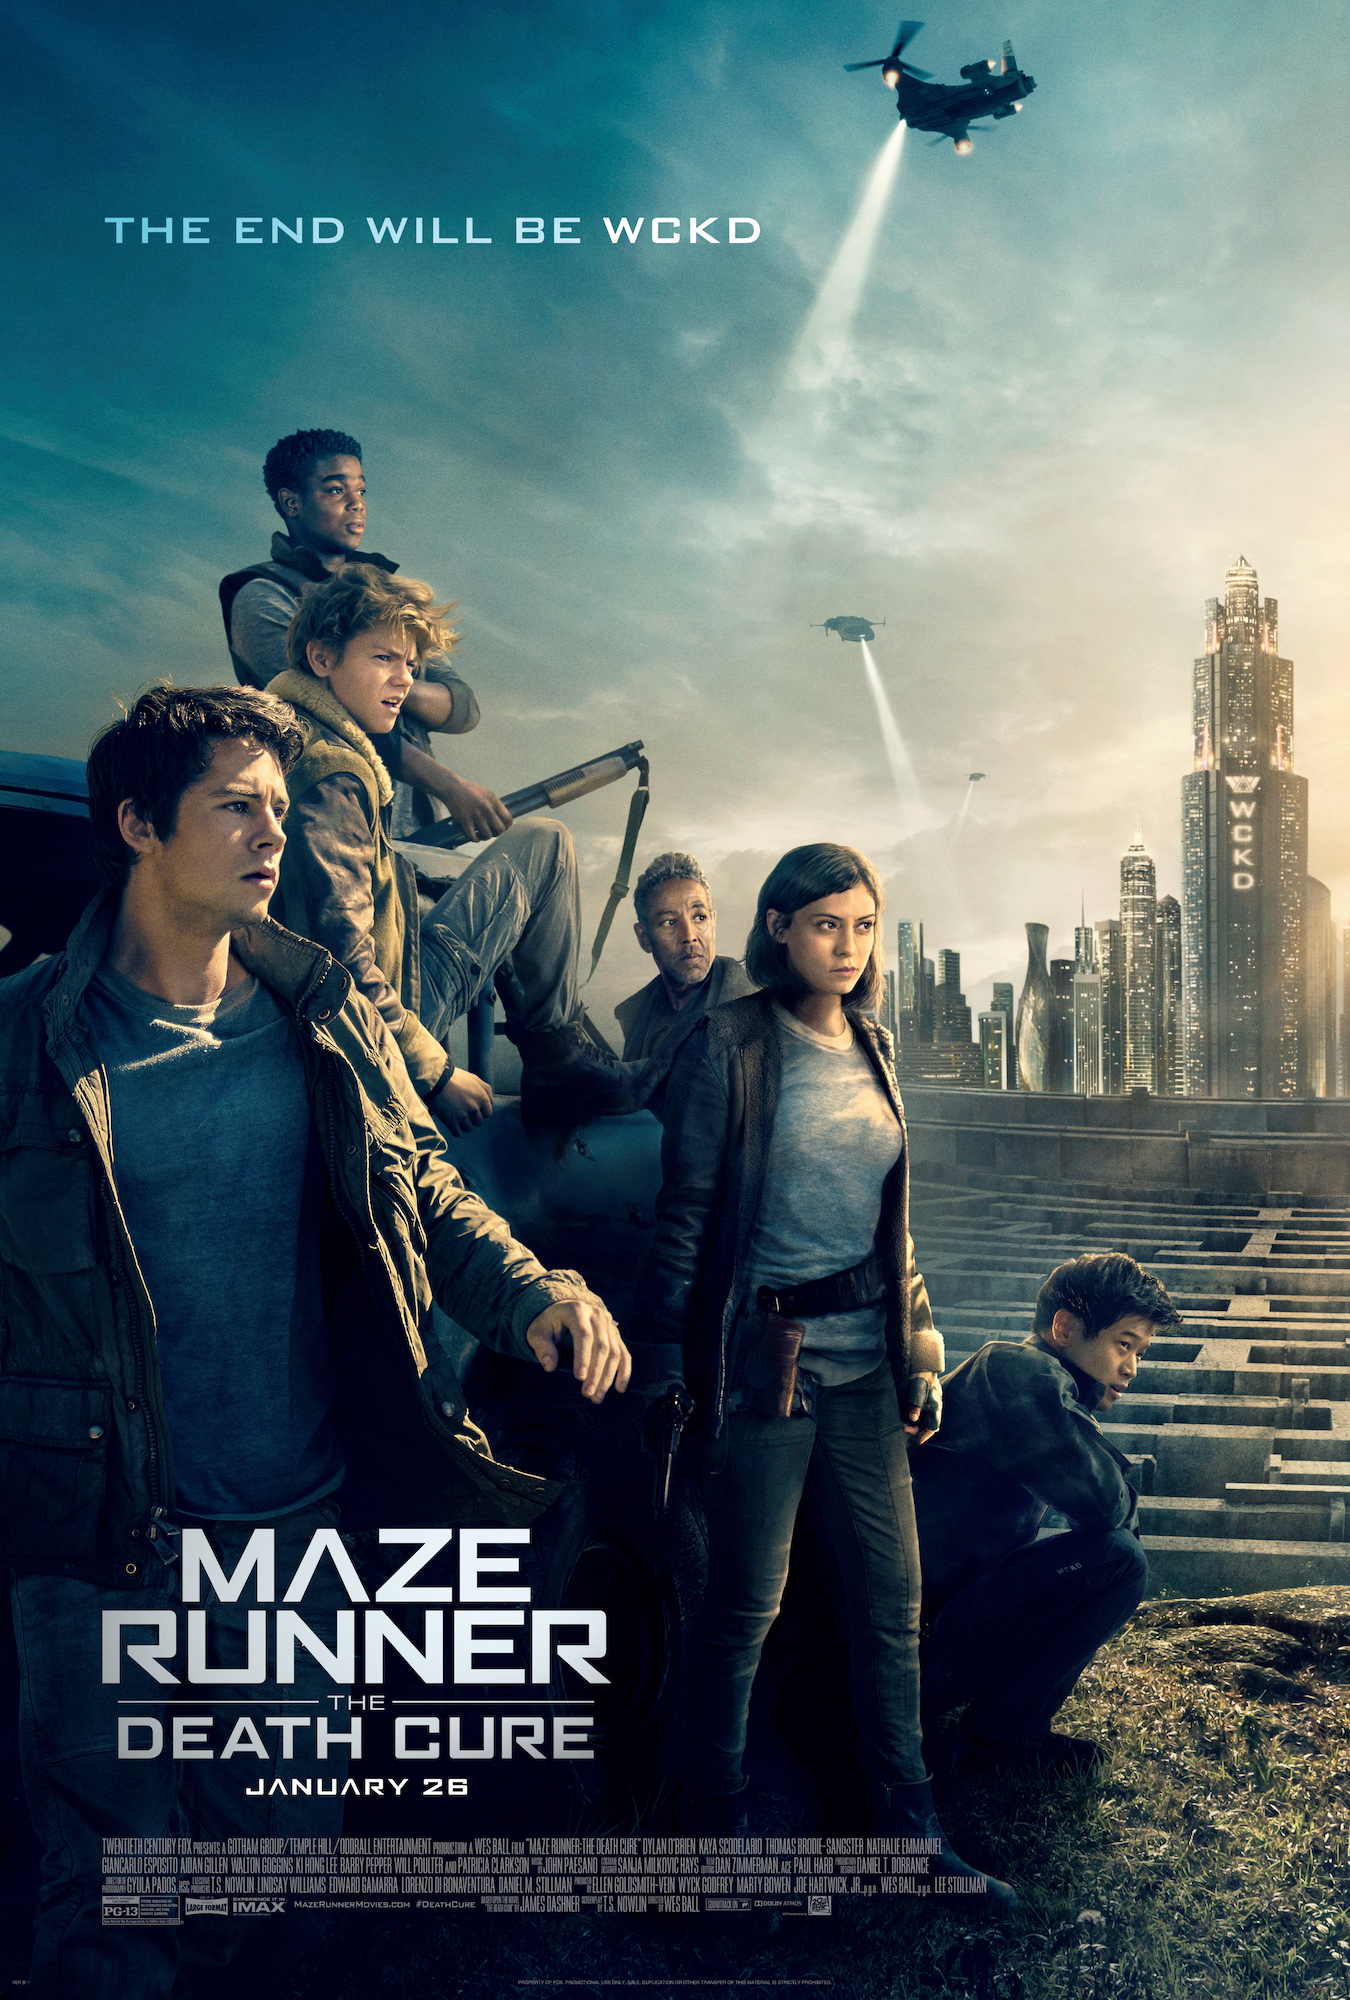 Maze Runner: The Death Cure Spoiler Free Movie Review